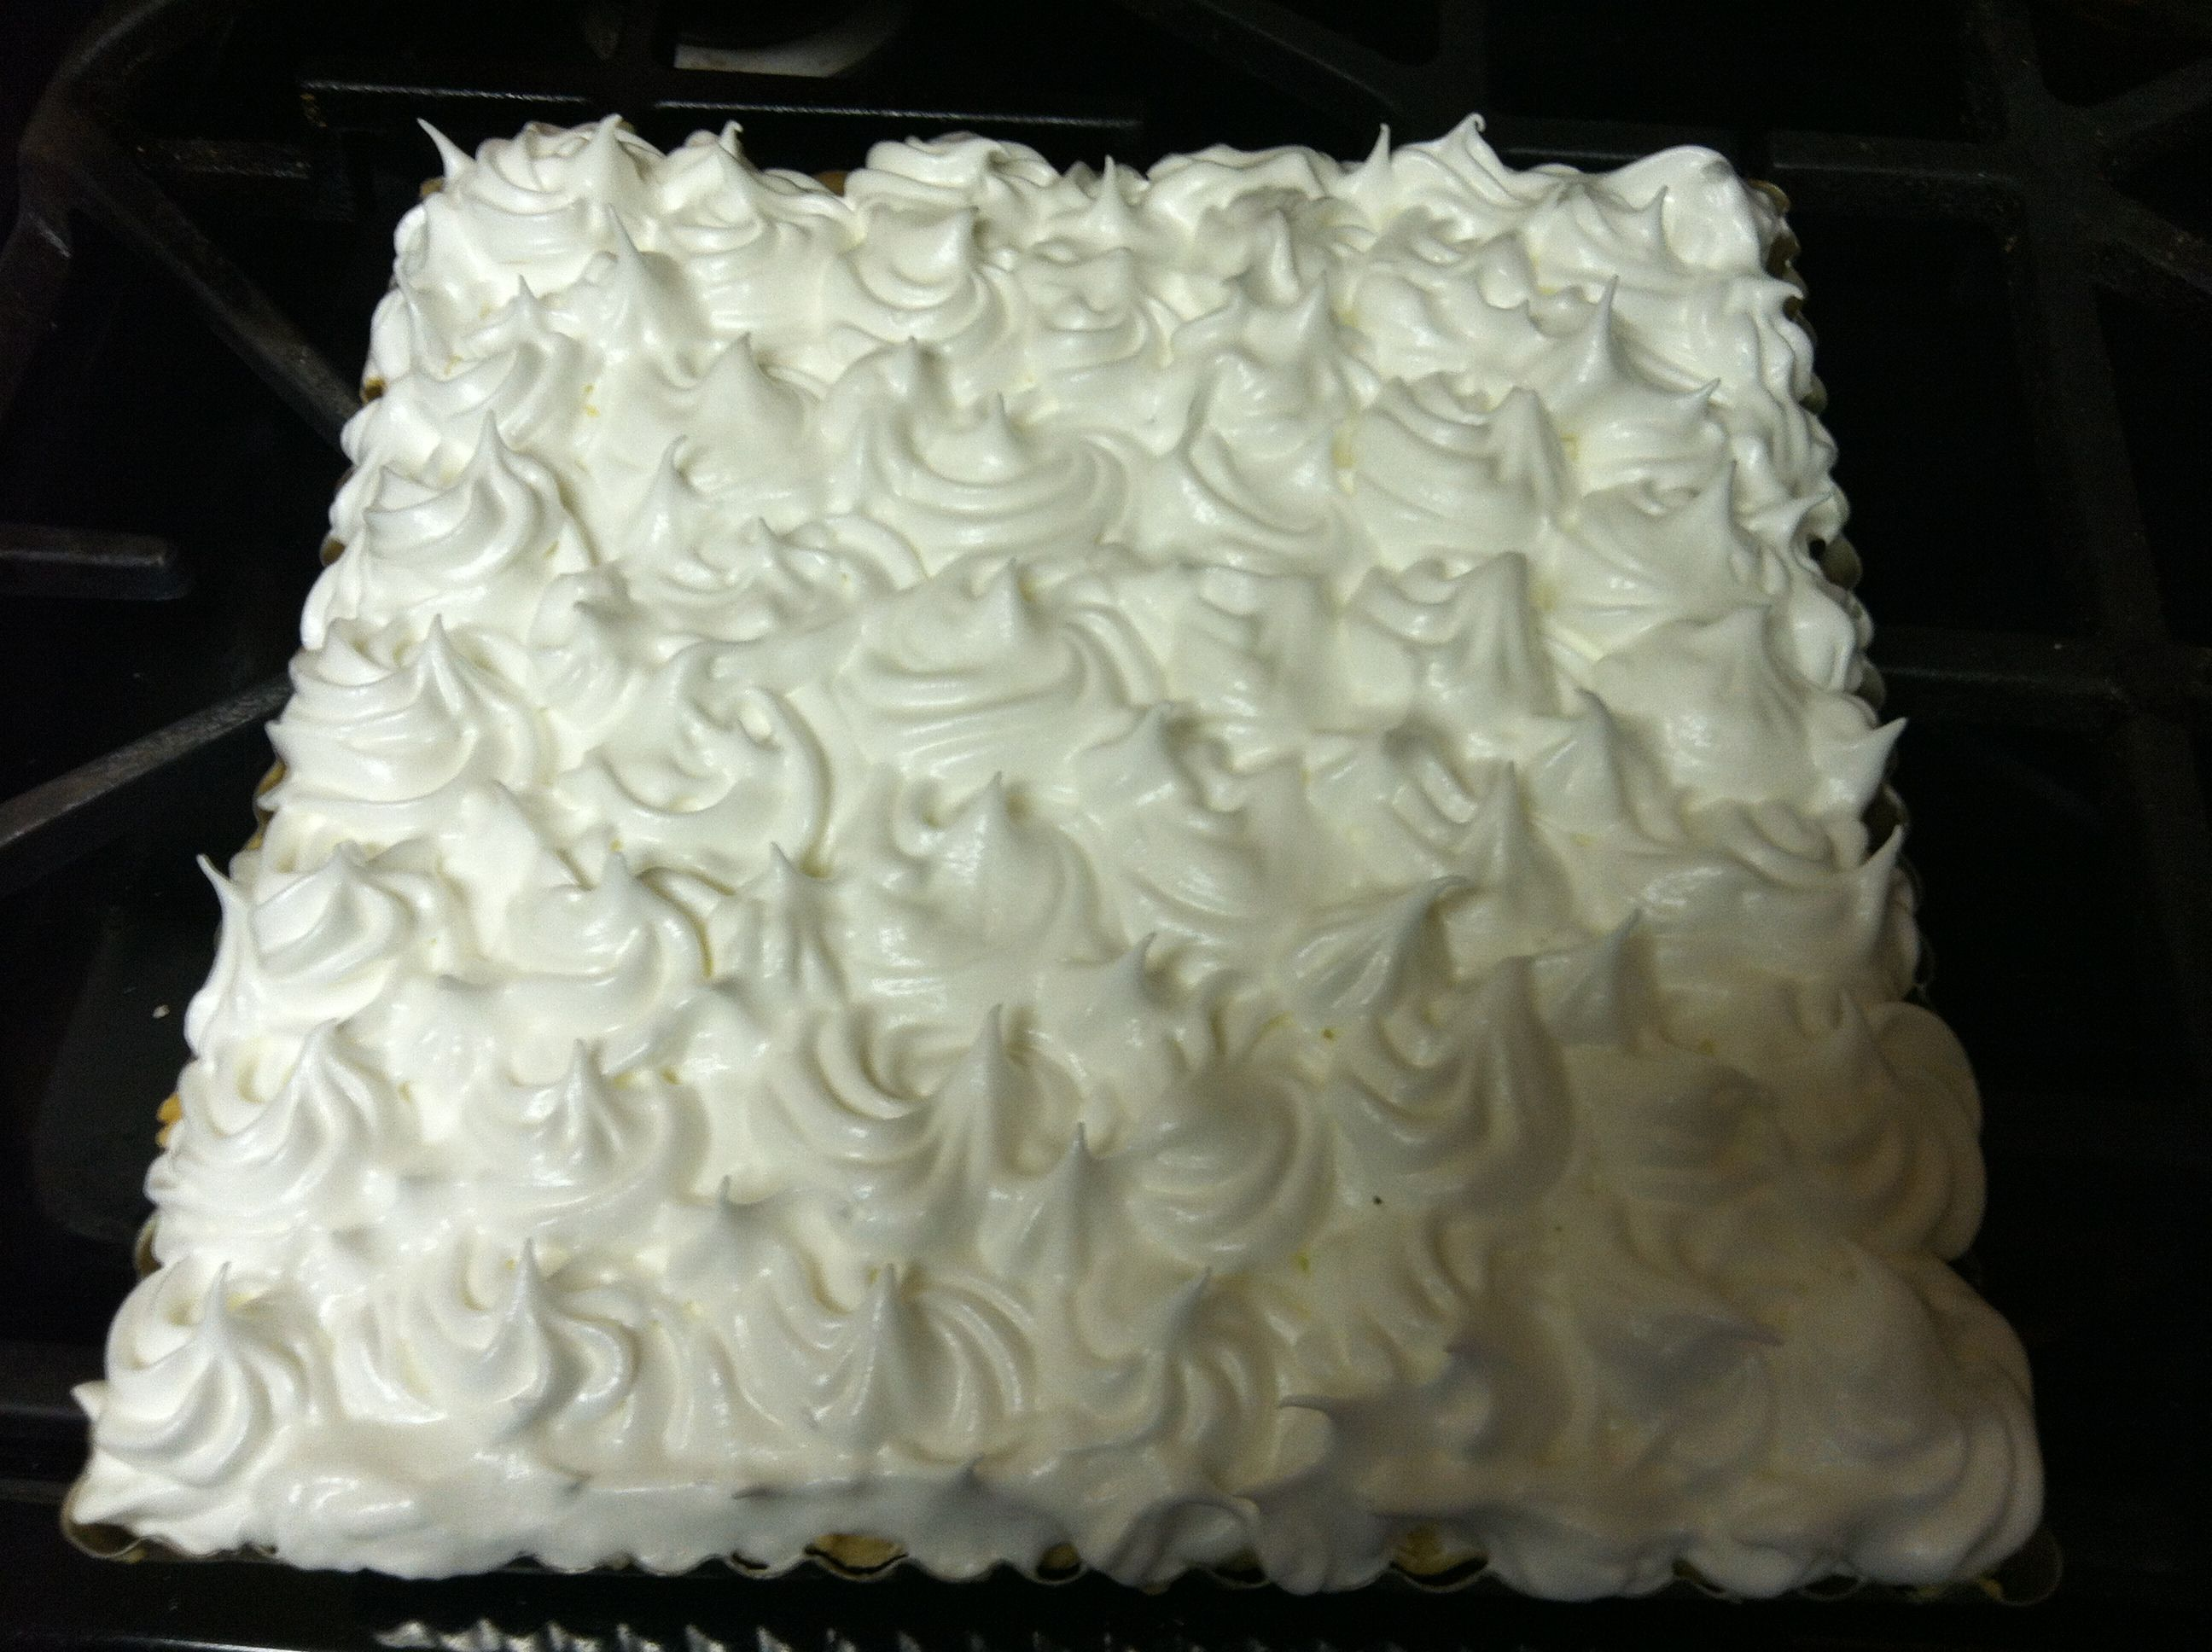 Lime meringue tart | Cakes/muffins. Desserts/treats | Pinterest